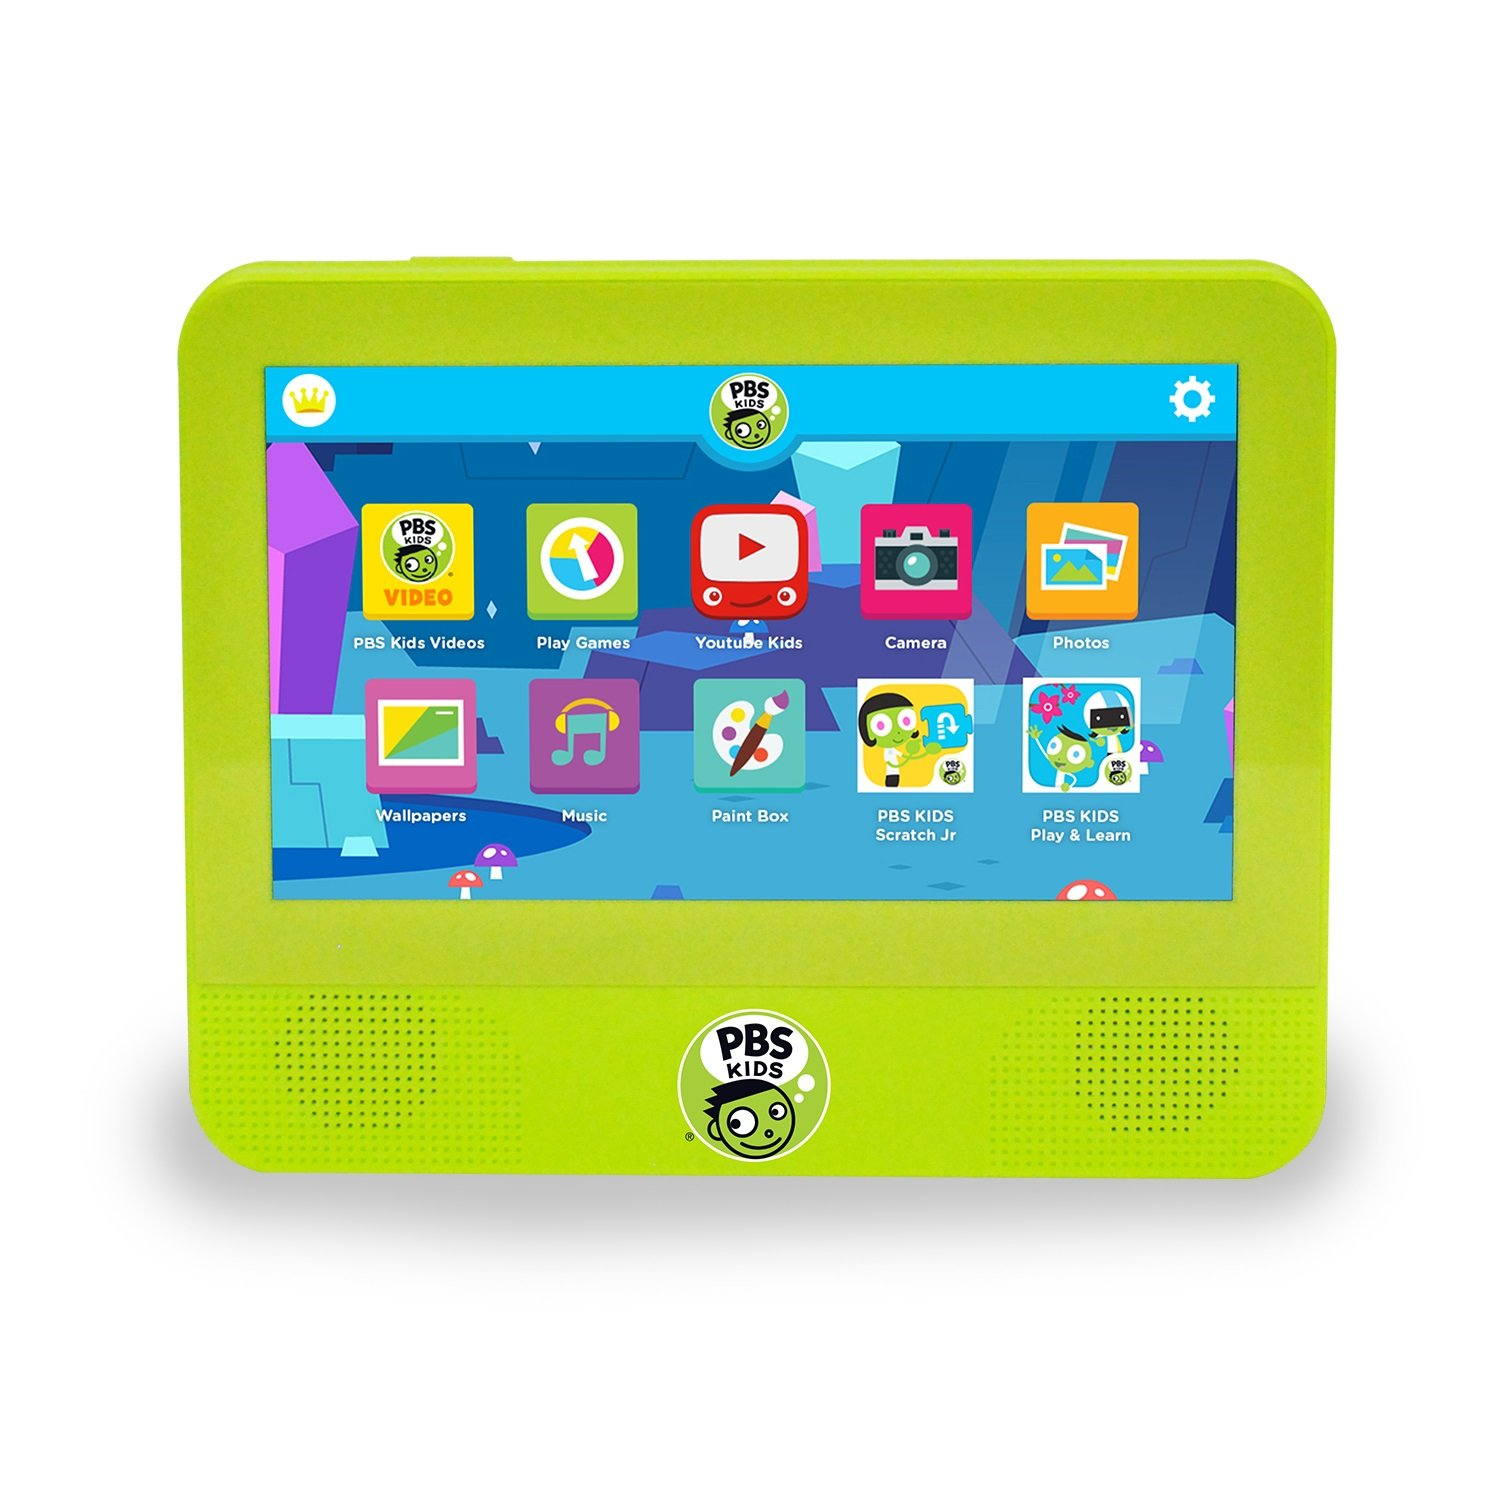 The PBS KIDS Playtime Tablet DVD Player comes preloaded with over 23 educational games and 120 video clips, songs, and music videos that all teach reading, math, and more. Expand your viewing power by playing your kids favorite DVDs on the Playtime Tablet DVD Player. Parental controls let you manage and customize your child's experience. With Google Play, you can access over 1 million applications and games along with access to thousands of movies, books, songs, TV shows, and magazines. 100% of the net proceeds PBS KIDS receives from all purchases of the PBS KIDS Playtime Tablet DVD Player helps encourage all children to discover who they are and what they can do.